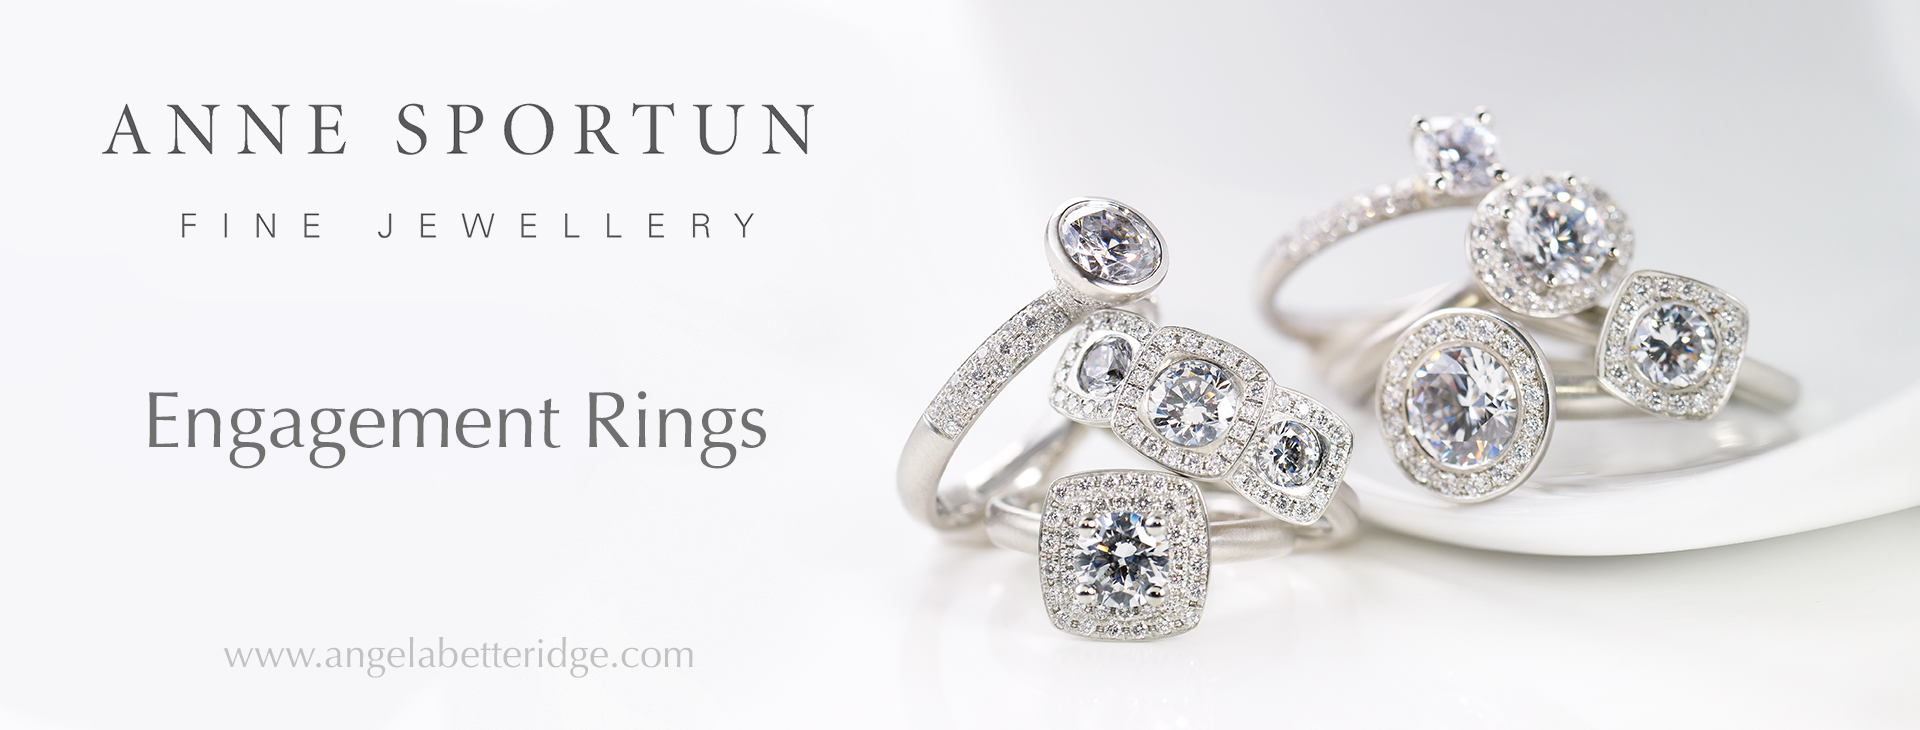 Angela Betteridge Jewellery Anne Sportun Engagement Rings